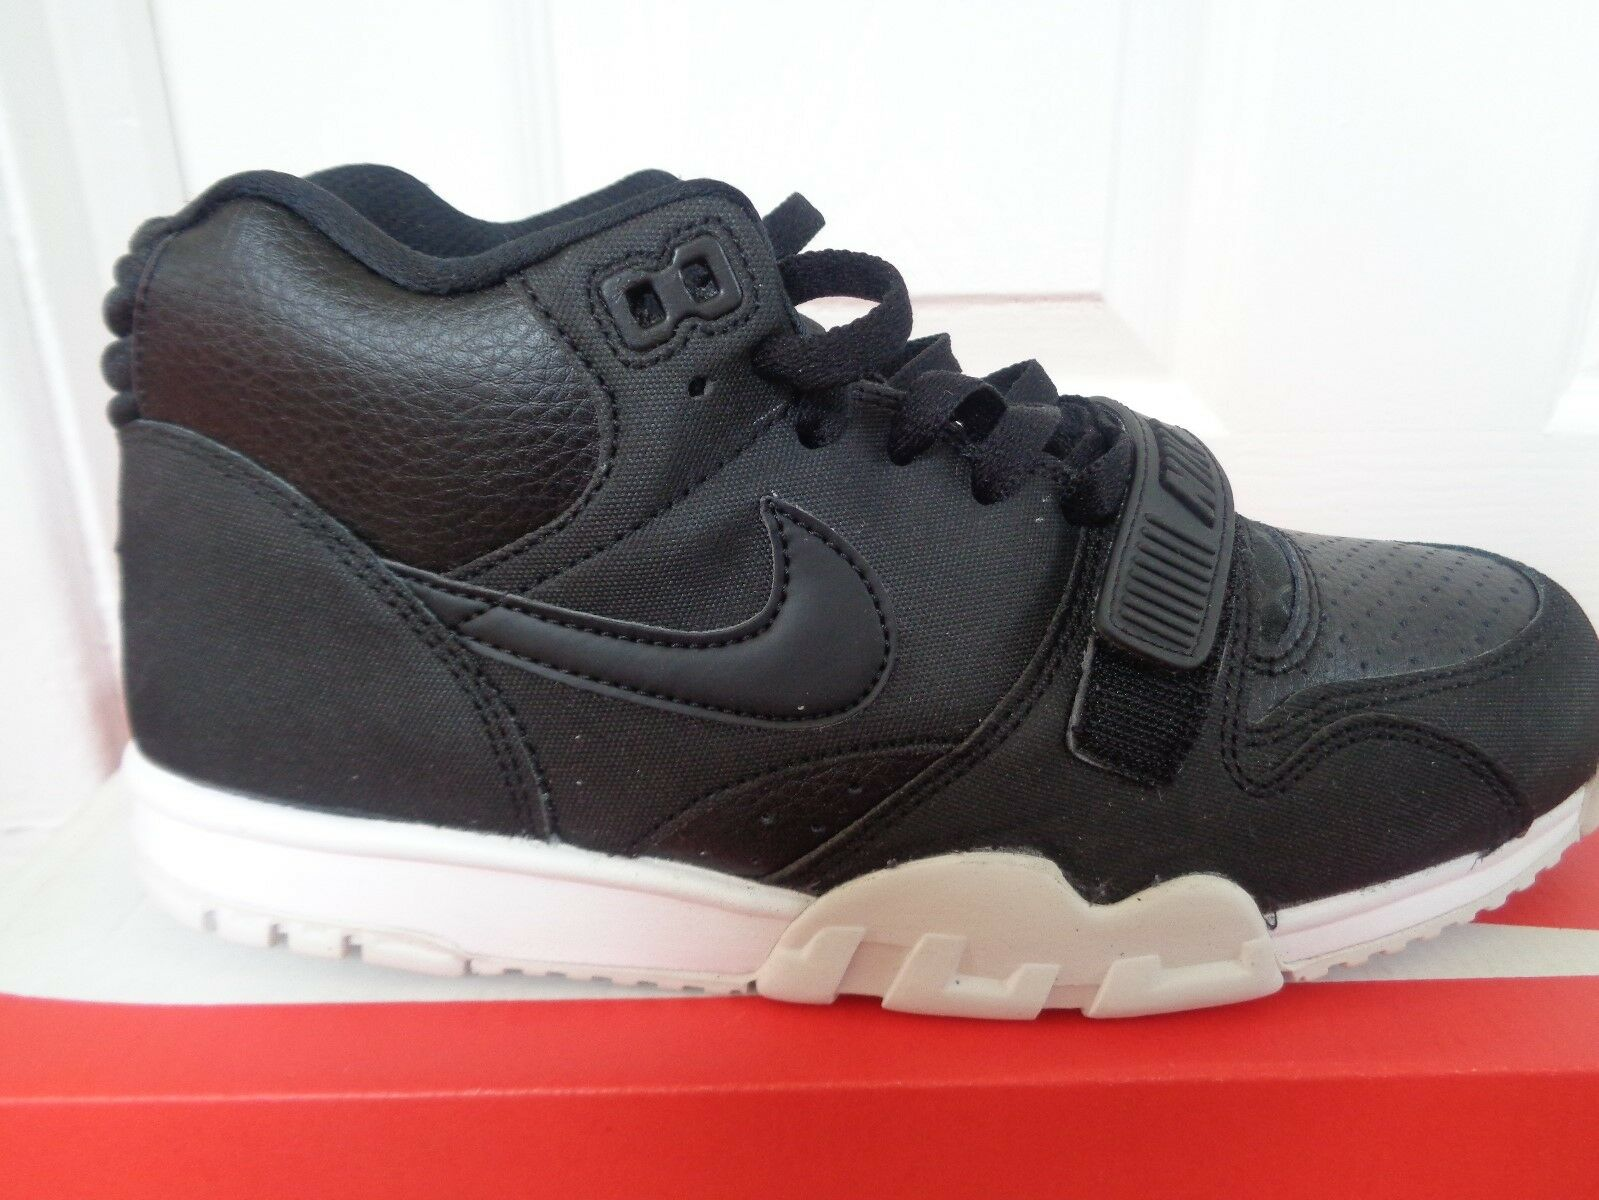 Nike Air trainer 1 Mid trainers sneakers 31754 005 uk 7.5 eu 42 us 8.5 NEW+BOX